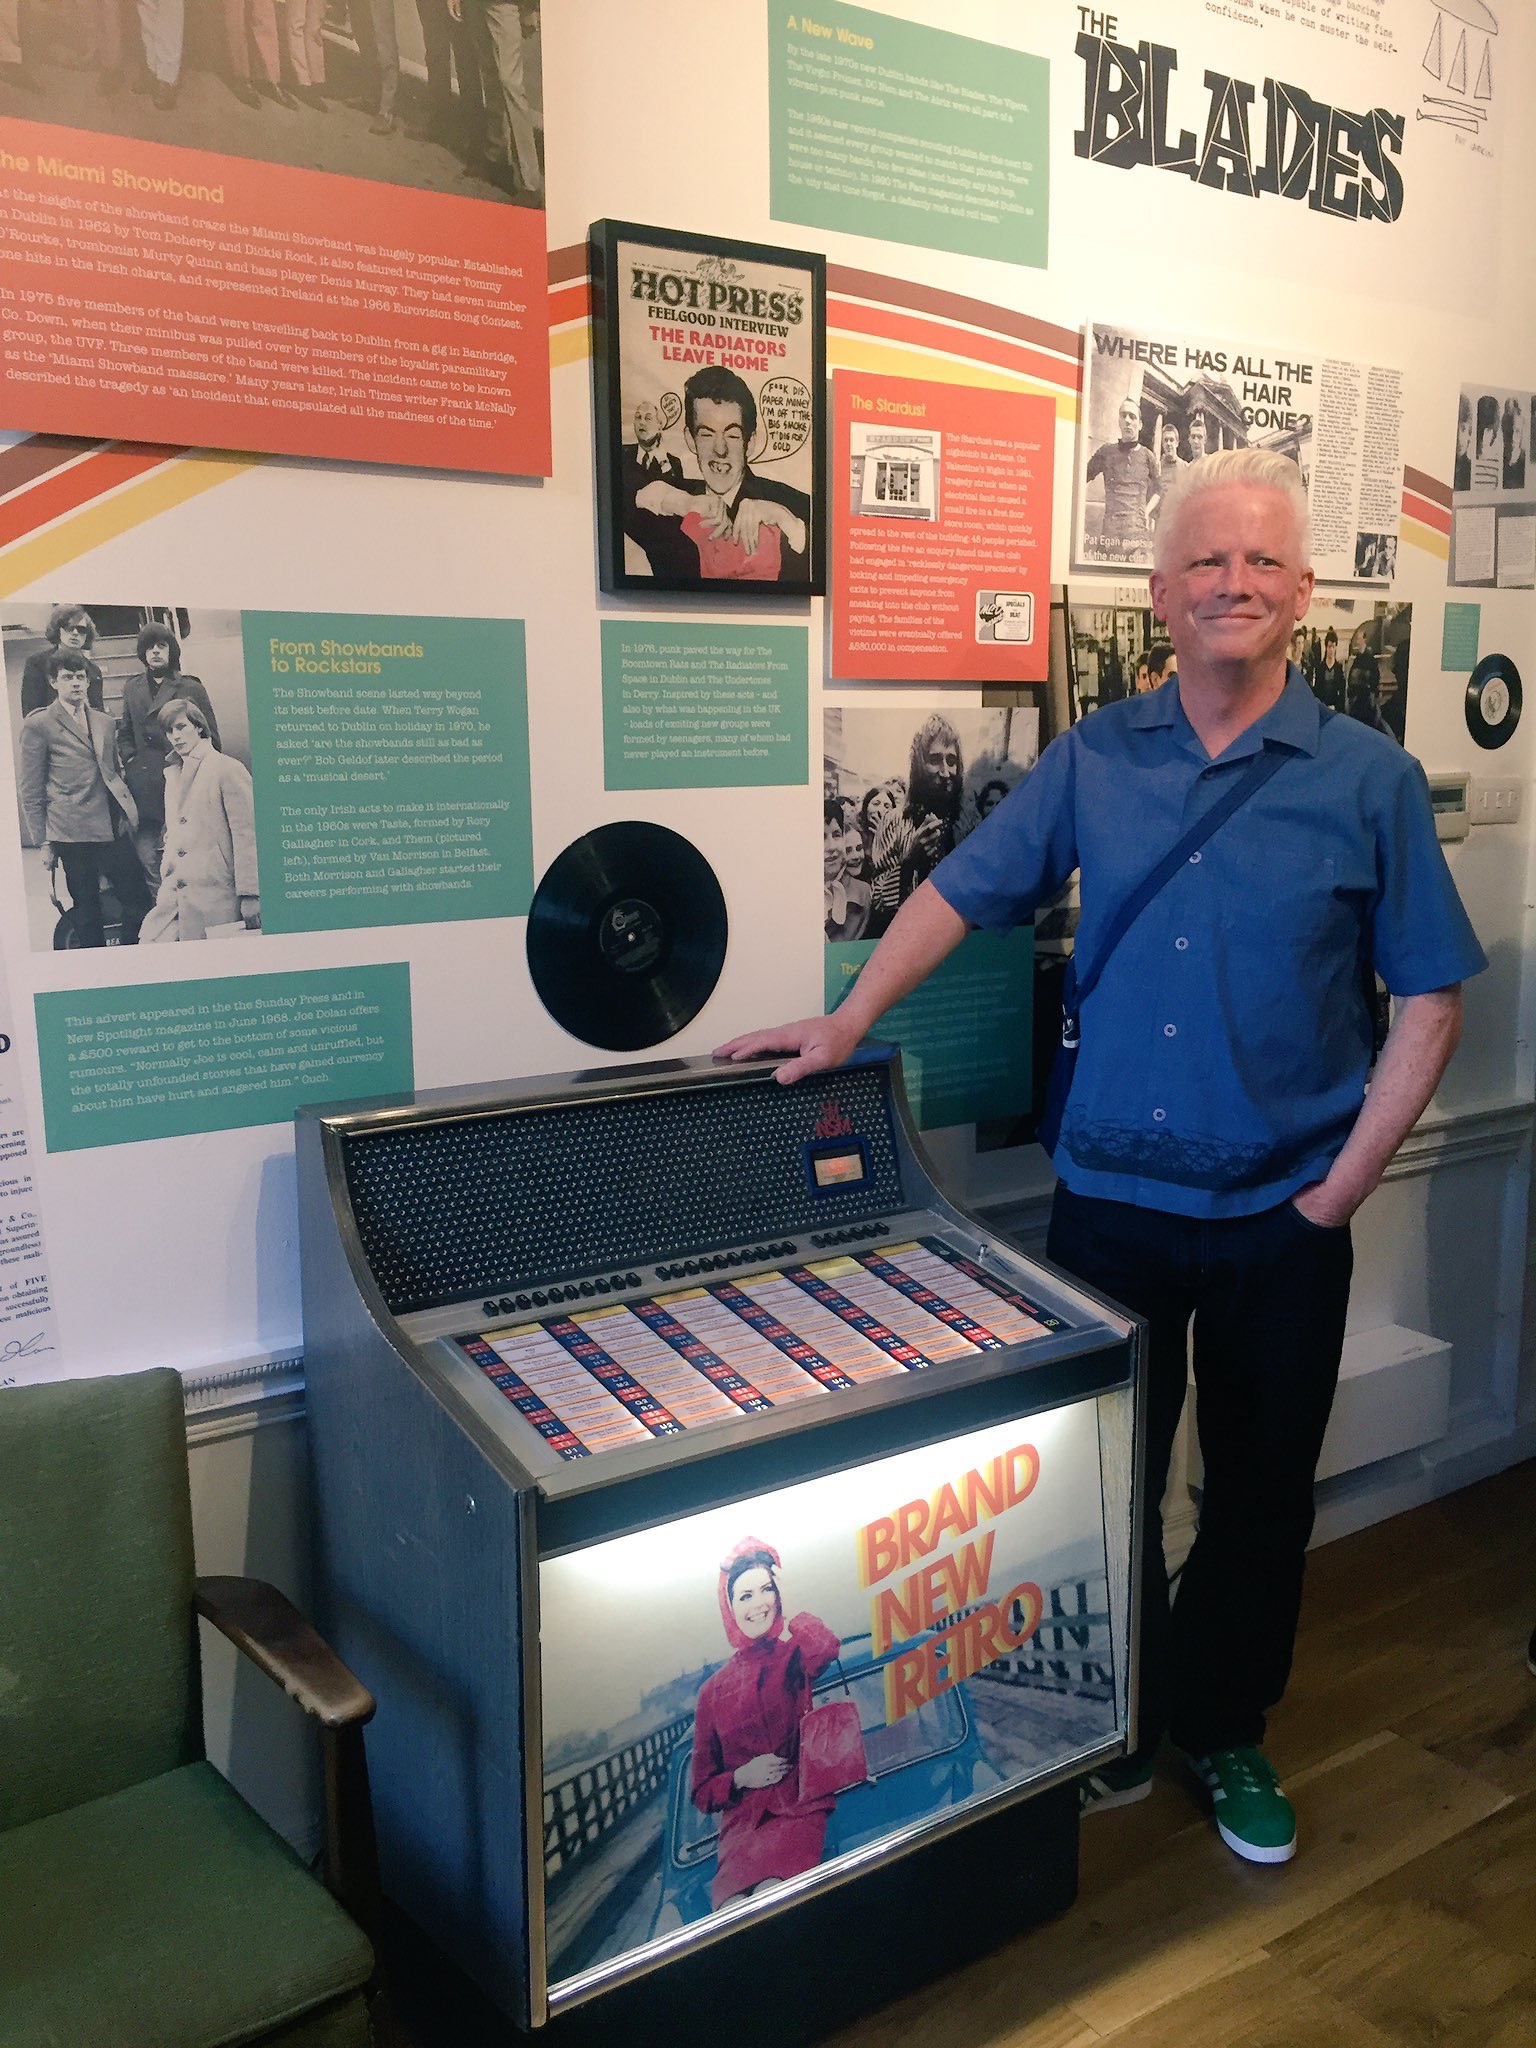 Brian McMahon, Brand New Retro, curator of the exhibition, at the fully functioning vinyl jukebox